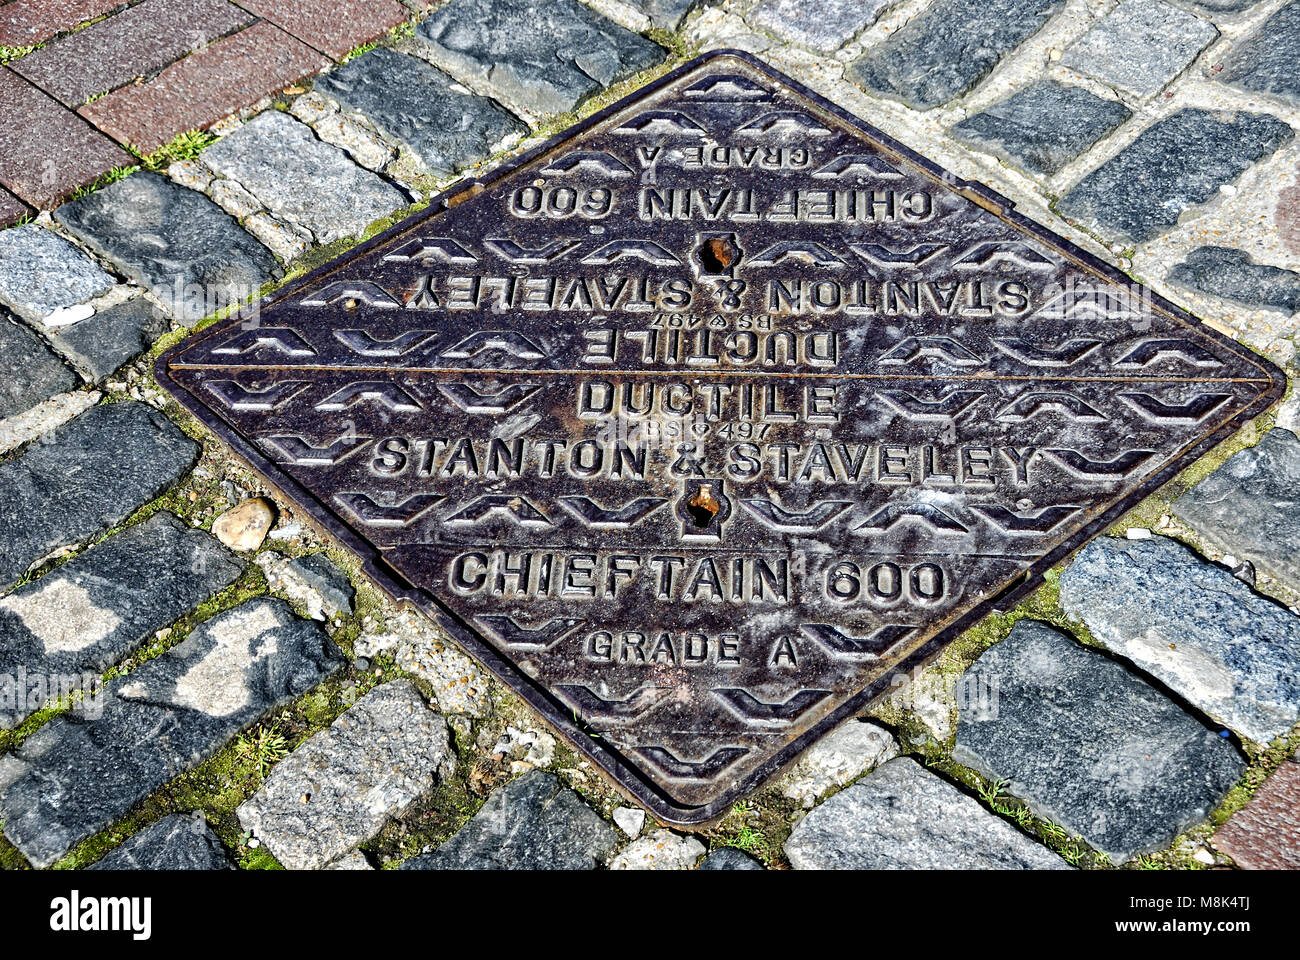 Stanton and Staveley Manhole Cover - Stock Image